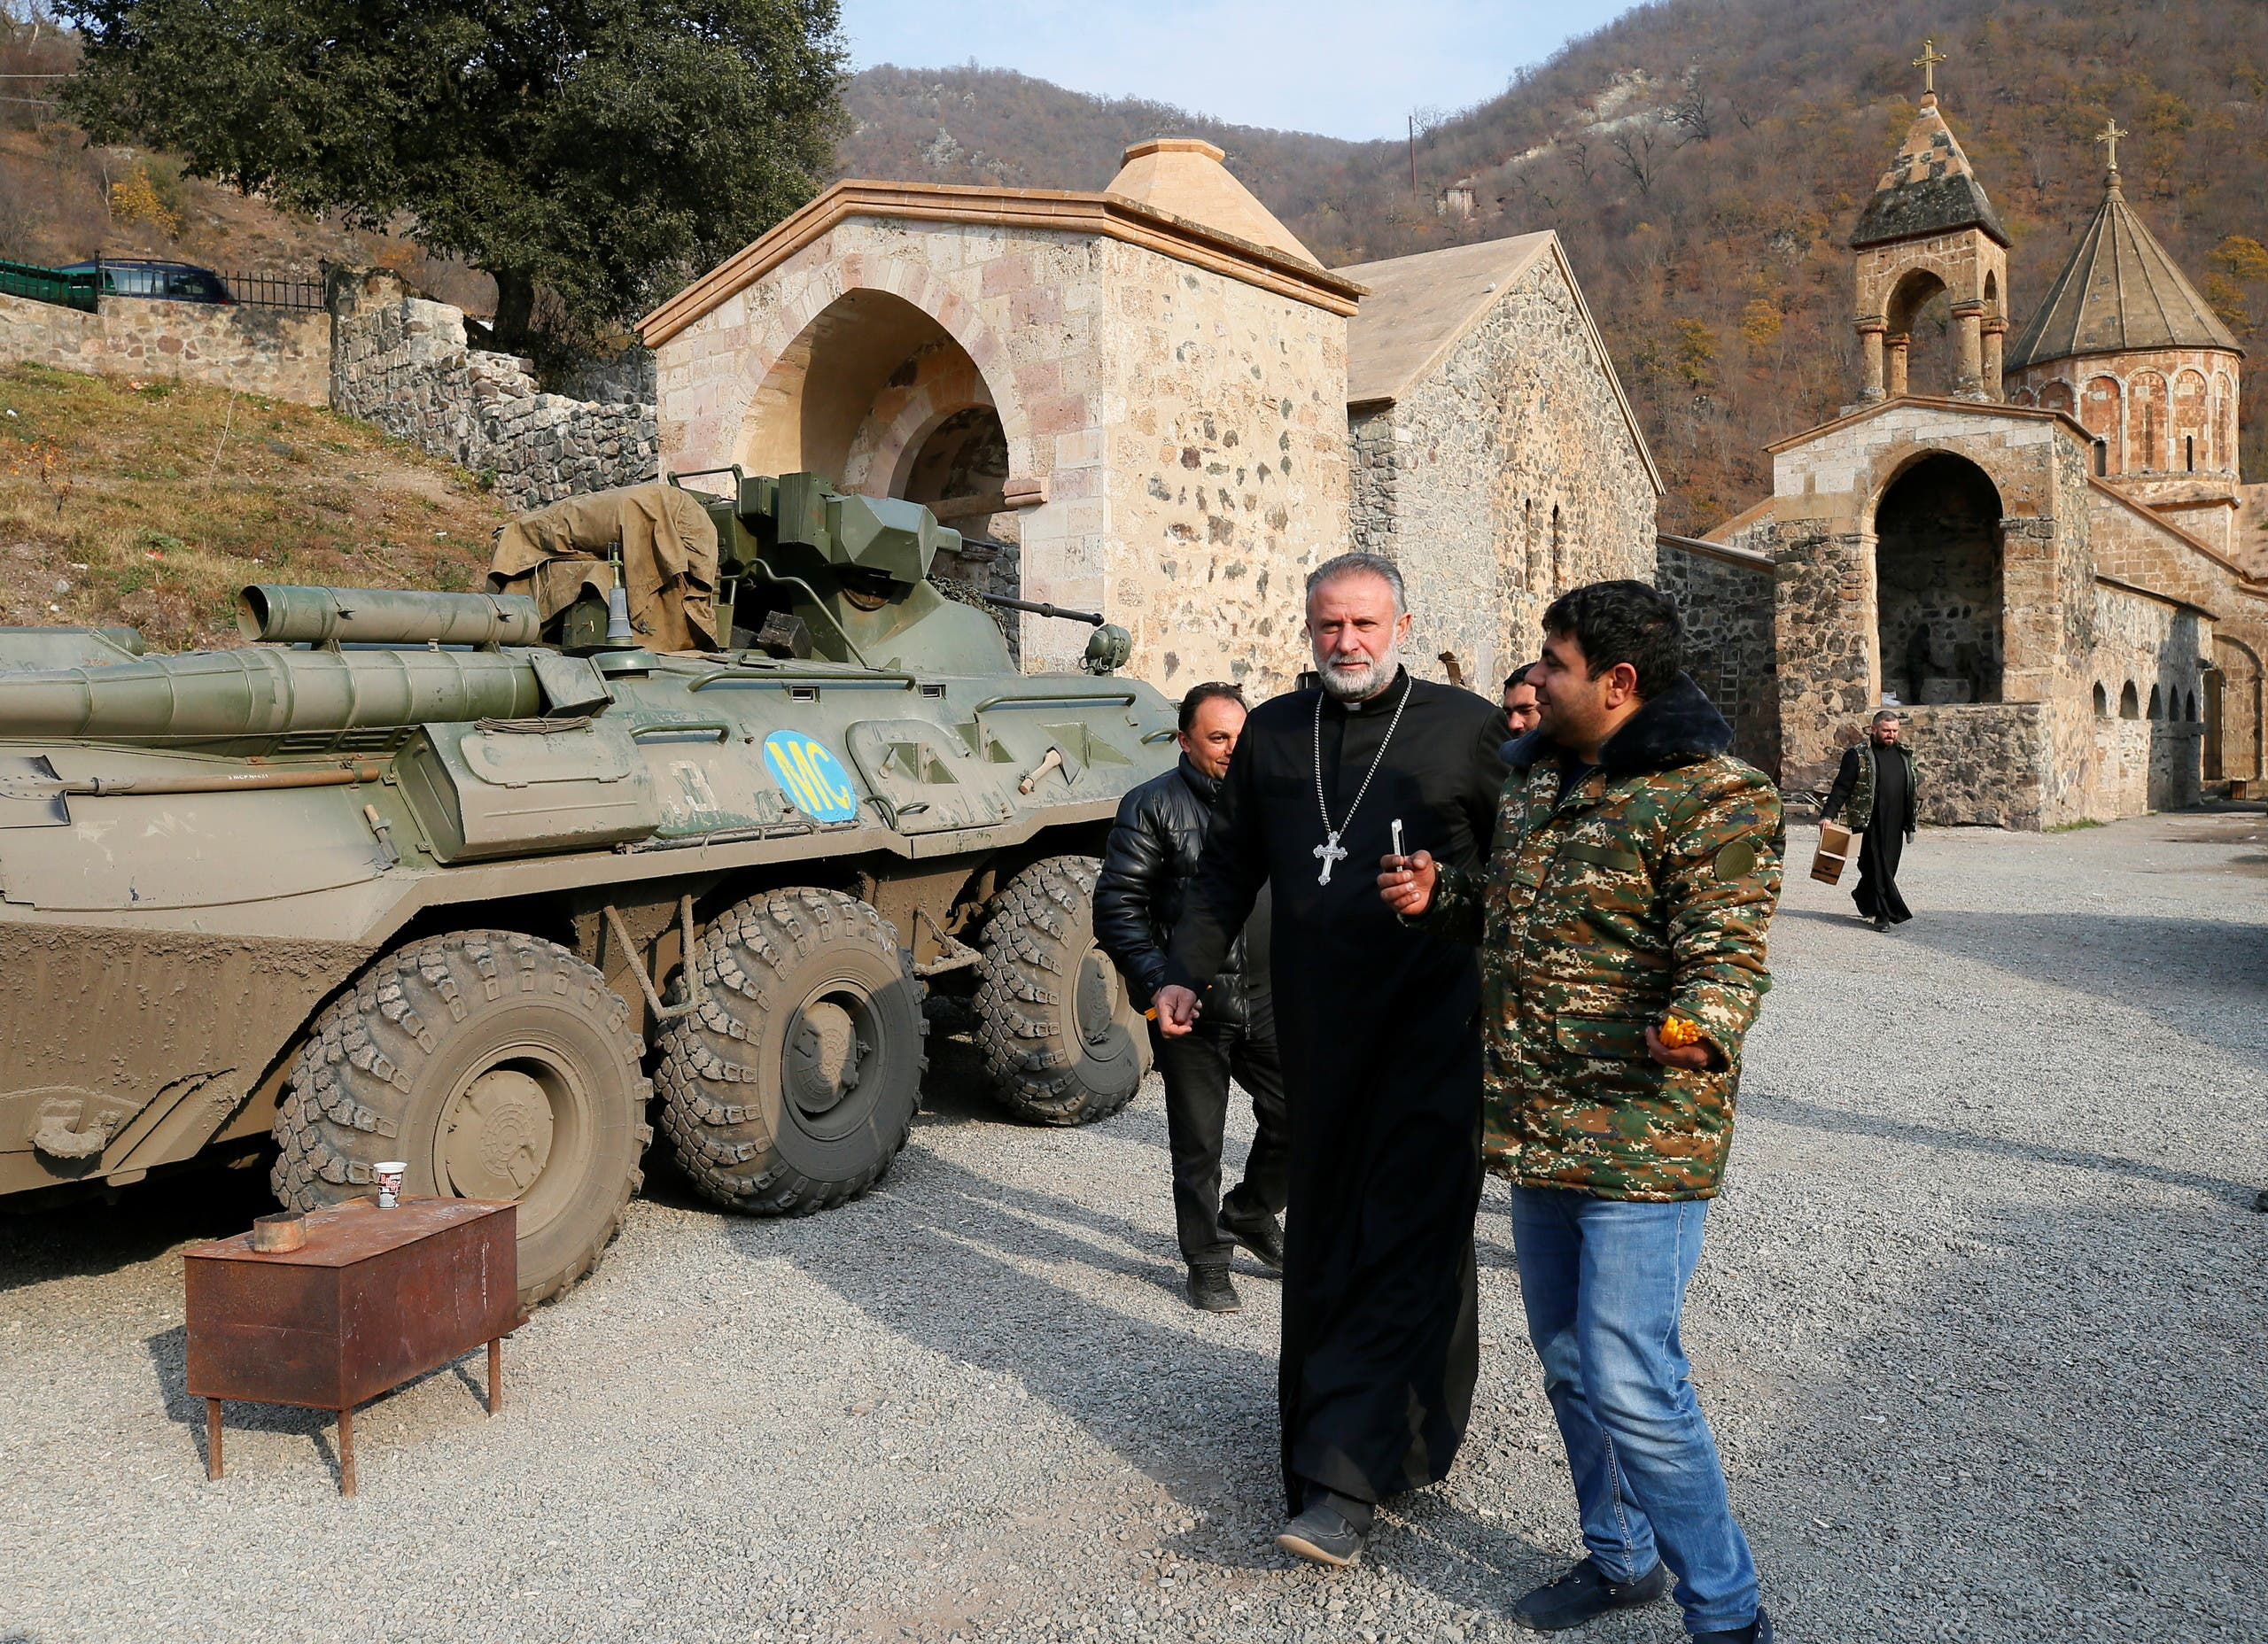 The monastery's abbot Father Hovhannes walks past a military vehicle of the Russian peacekeeping forces at the Dadivank, an Armenian Apostolic Church monastery, located in a territory which is soon to be turned over to Azerbaijan under a peace deal that followed the fighting over the Nagorno-Karabakh region, in the Kalbajar district November 15, 2020. (Reuters)